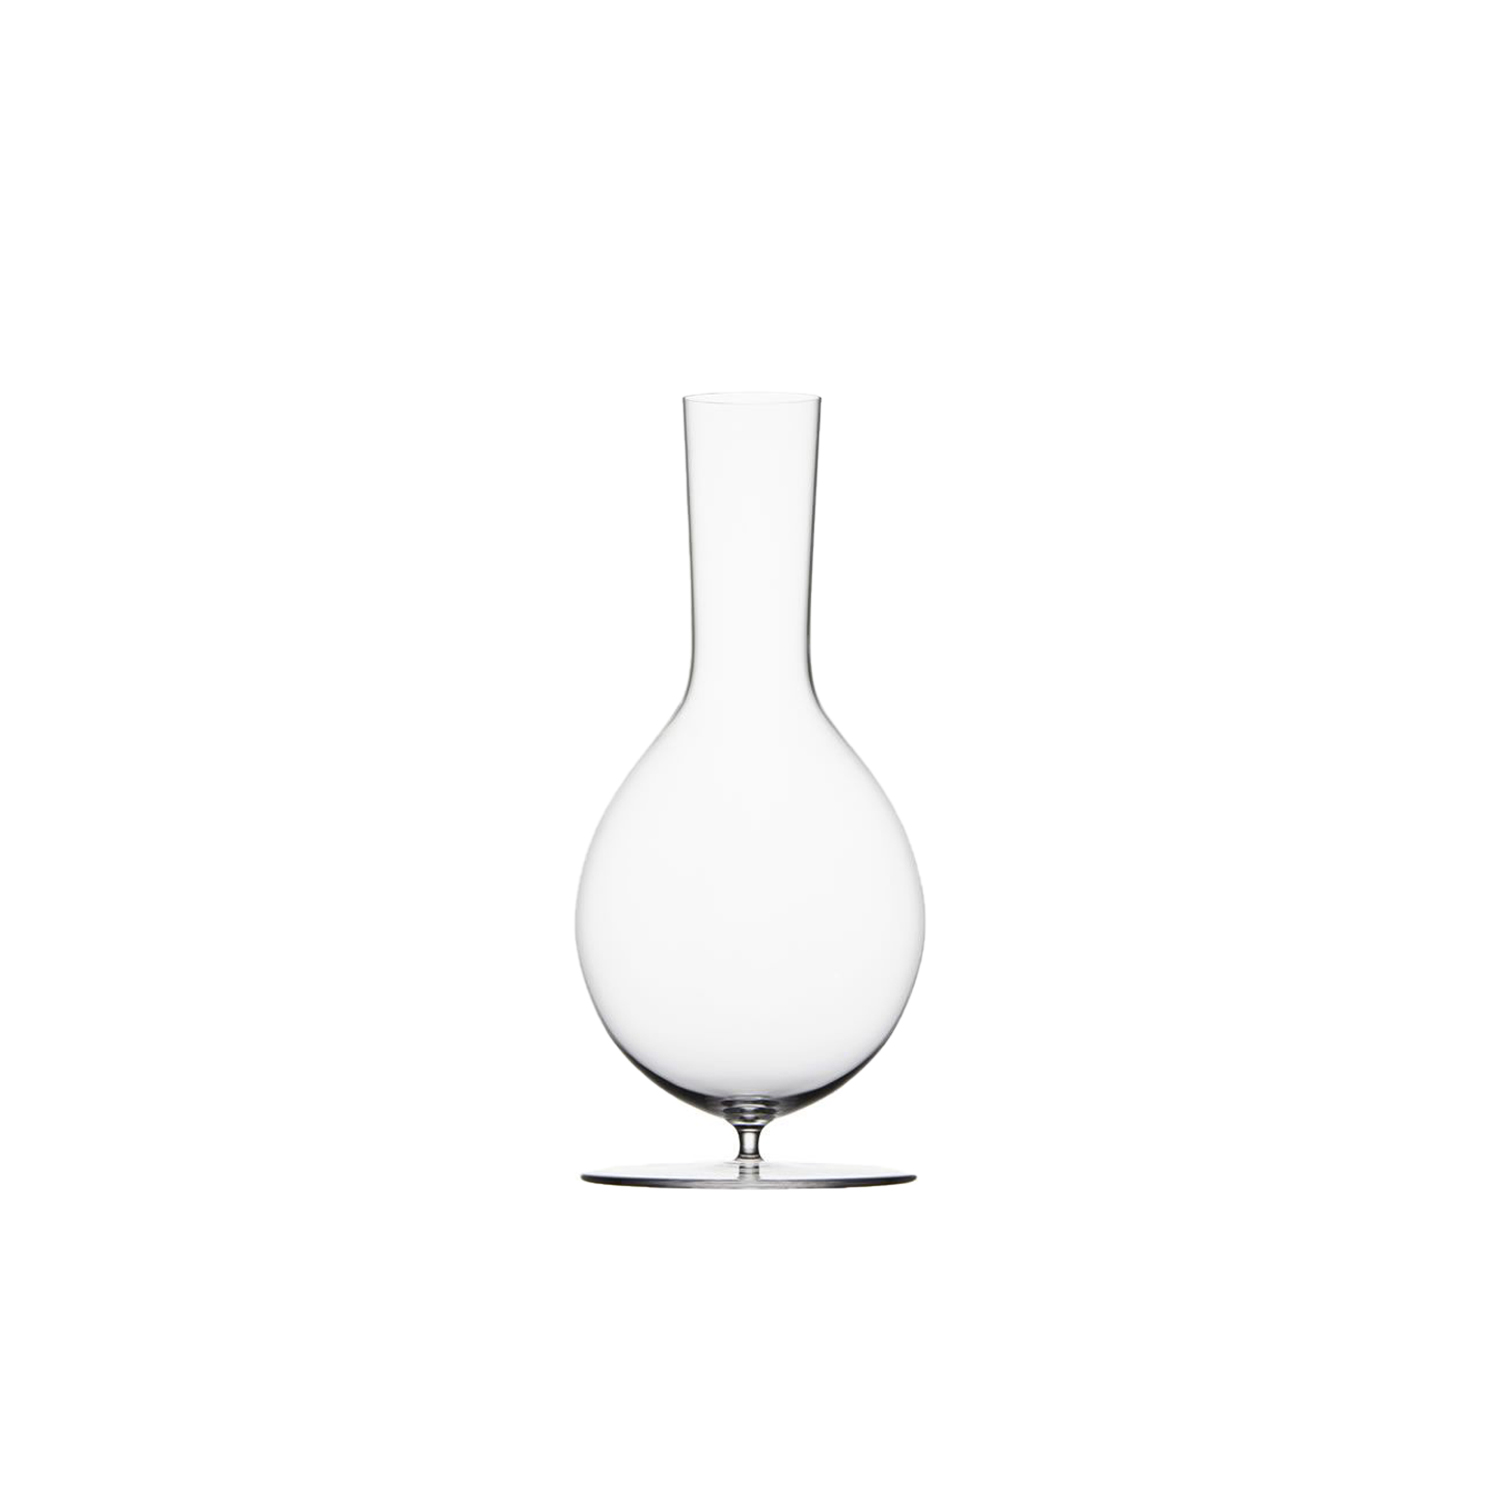 Drinking Set No.280 Wiener Gemischter Satz Wine Decanter without Stopper - POLKA a young and sucessful design studio from Austria wanted to create a simple Lobmeyr series to be used for personal everyday rituals. Each glass radiates elegance and grace of mouth-blown Lobmeyr crystal and each of the small series has its own story. So do the oenological correct wine glasses or the traditional champagne cup, standing for ebullient pleasure. | Matter of Stuff